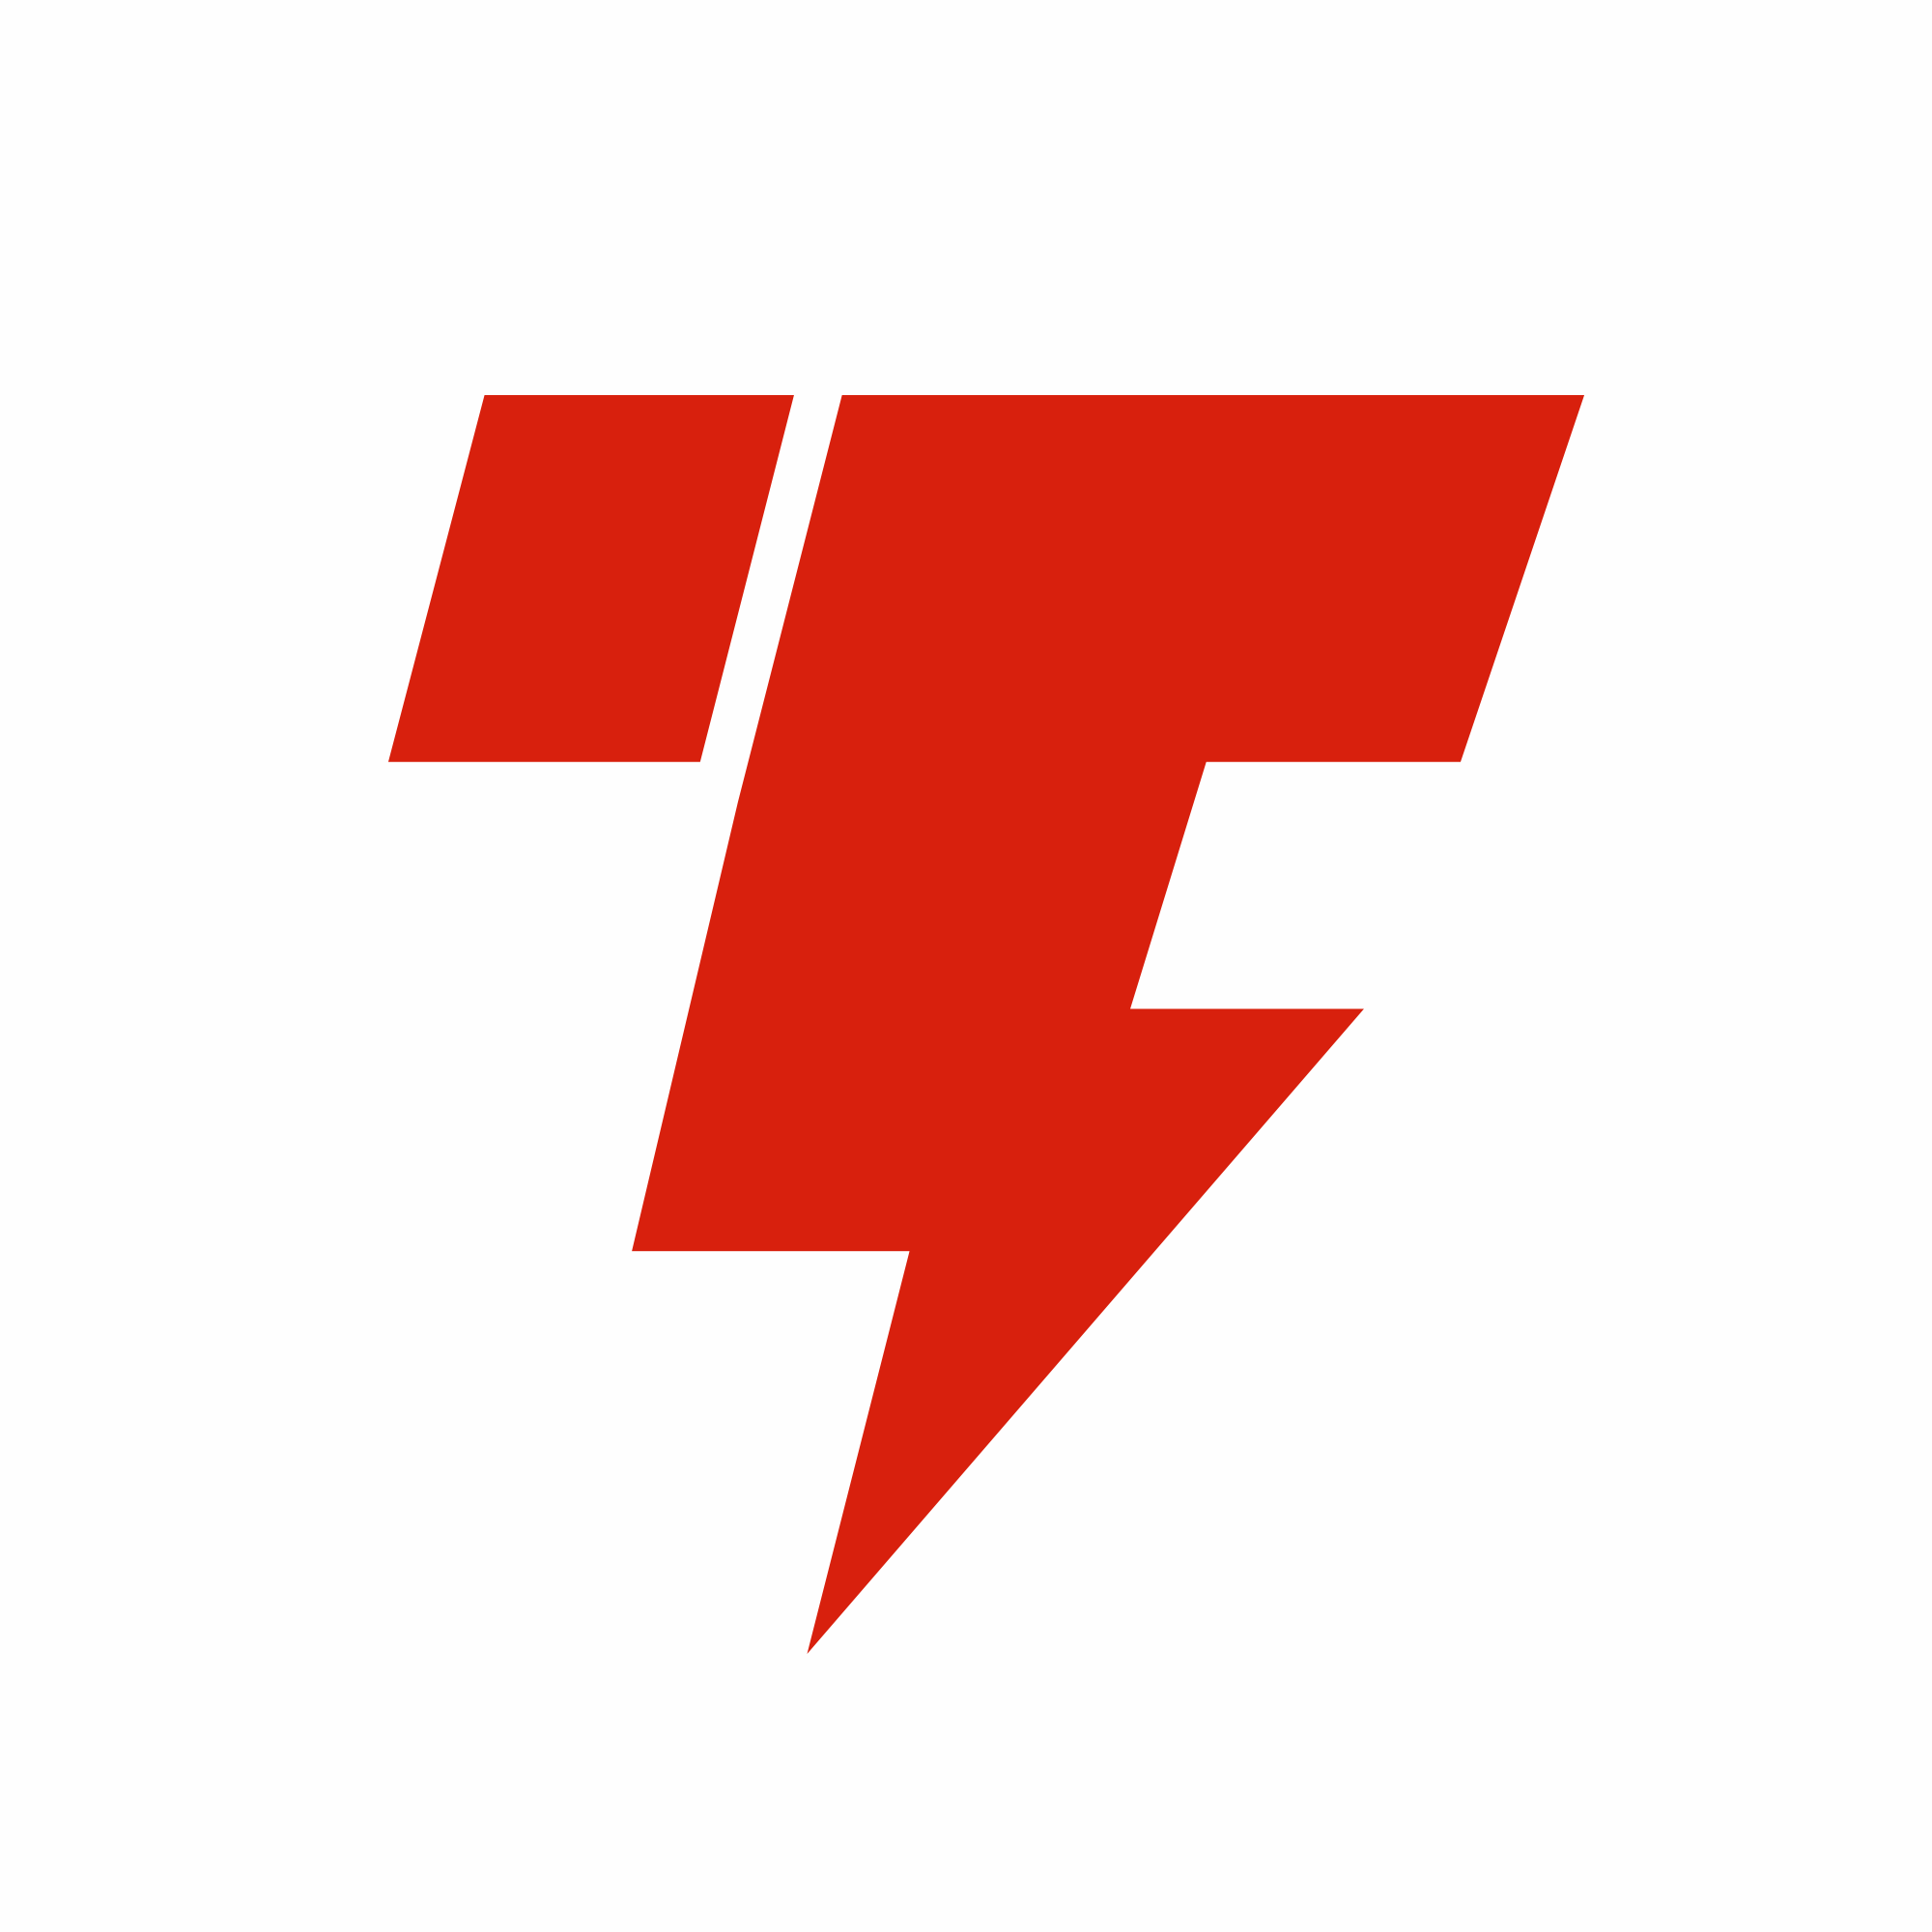 hight resolution of led strip light connectors lightbox moreview lightbox moreview lightbox moreview lightbox moreview